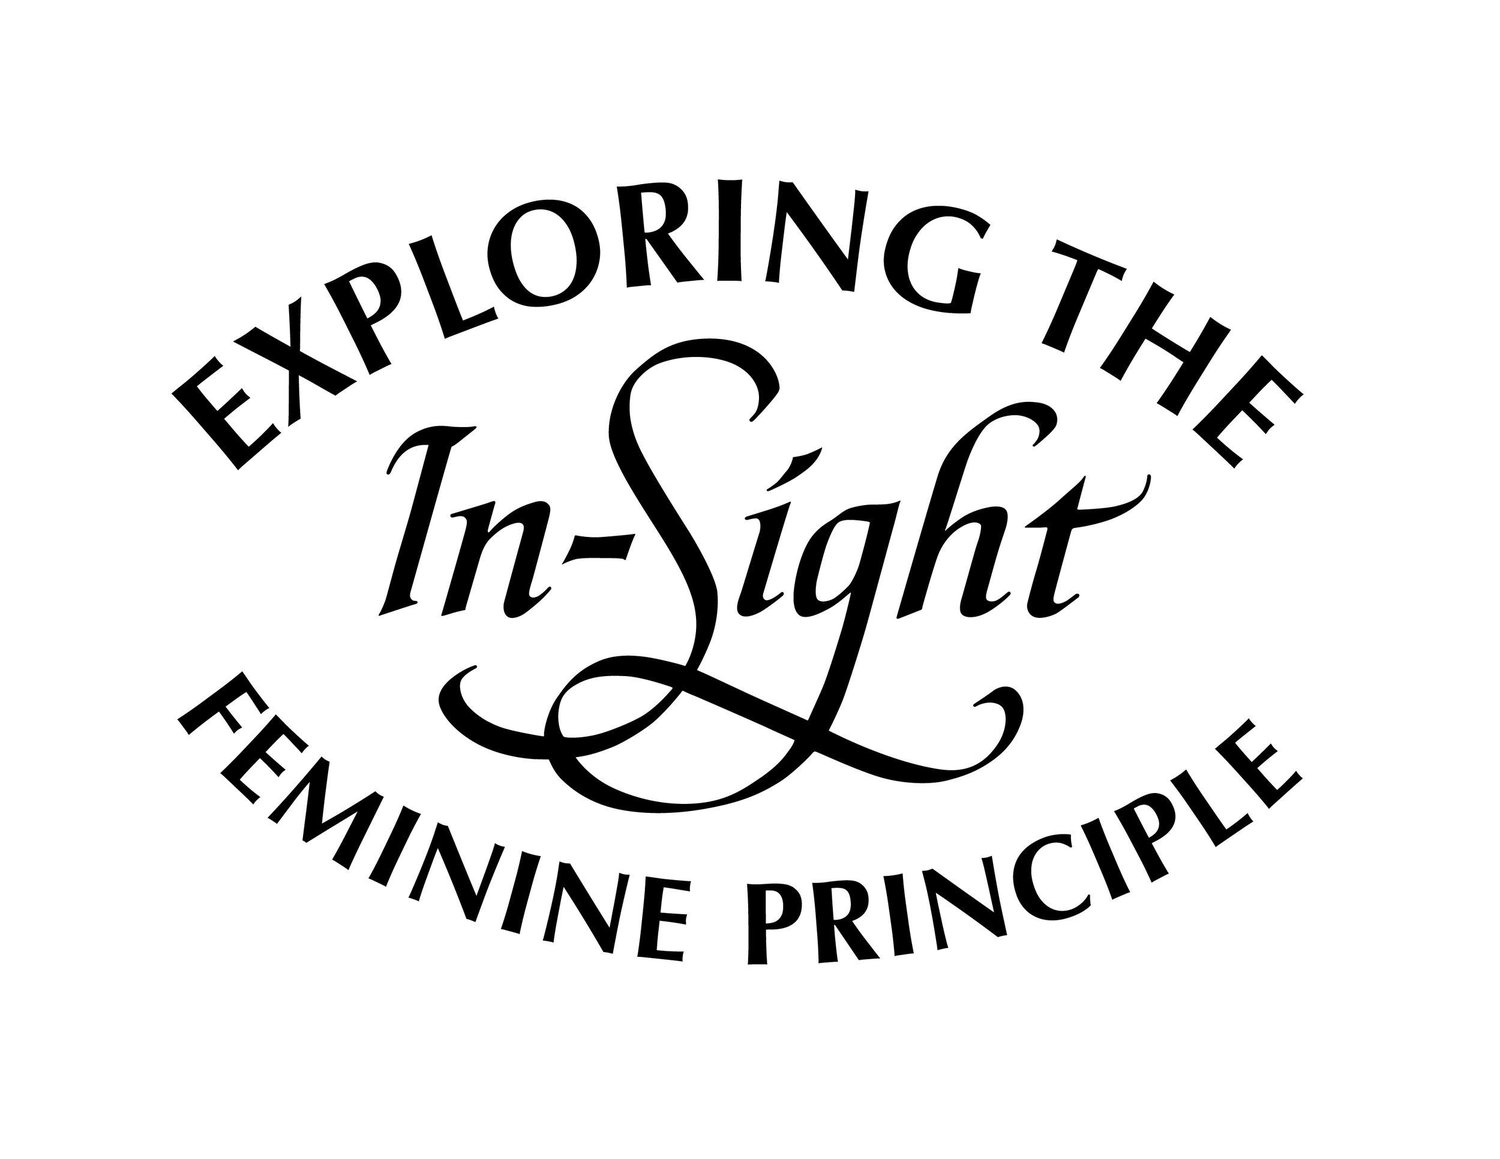 In-sight: Exploring the Feminine Principle